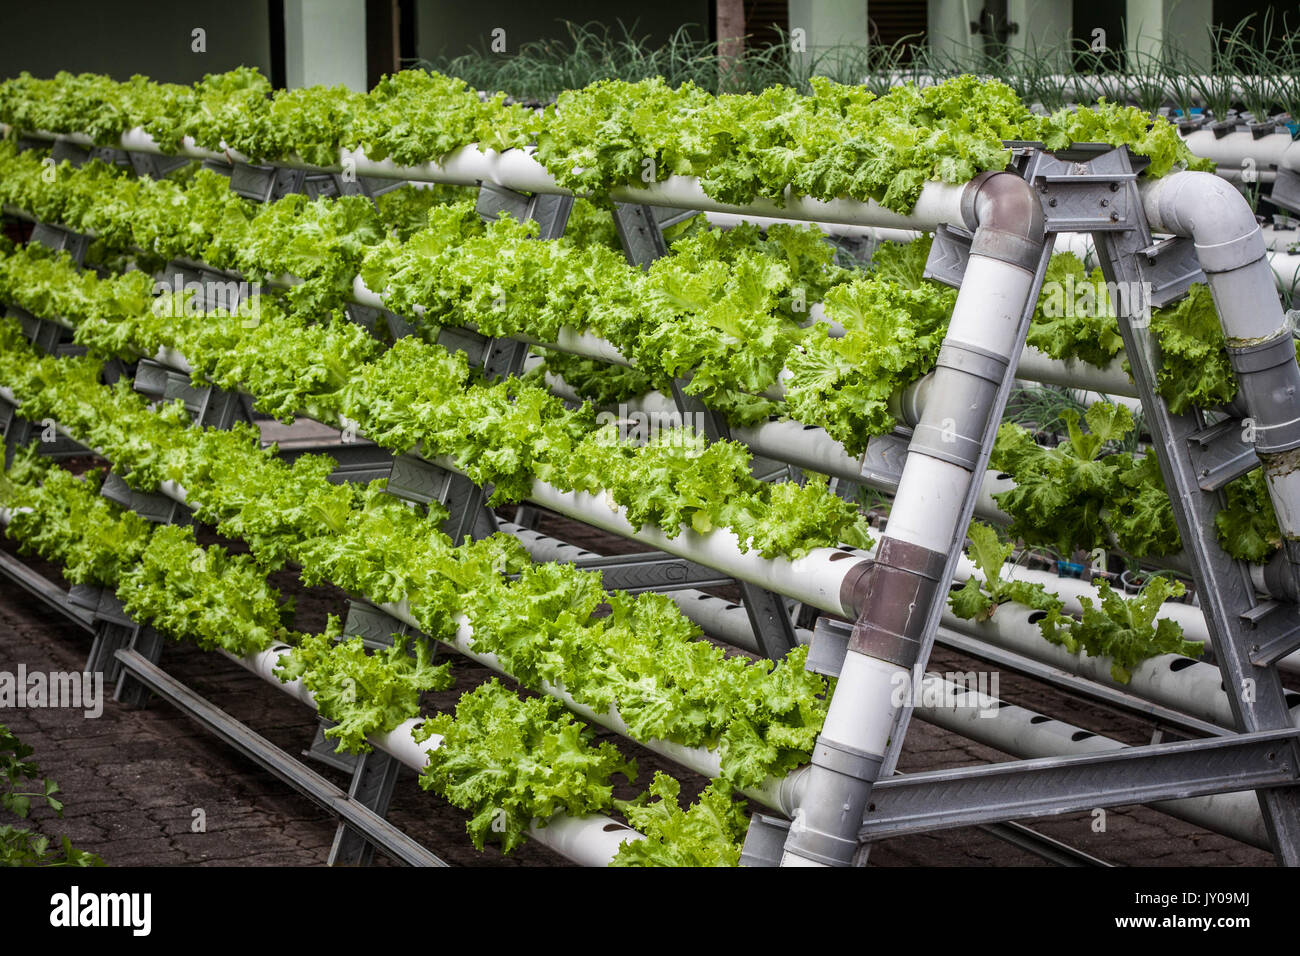 Vertical Garden With Pipe Pvc Photo Taken In Jogja Yogyakarta Indonesia  Java   Stock Image